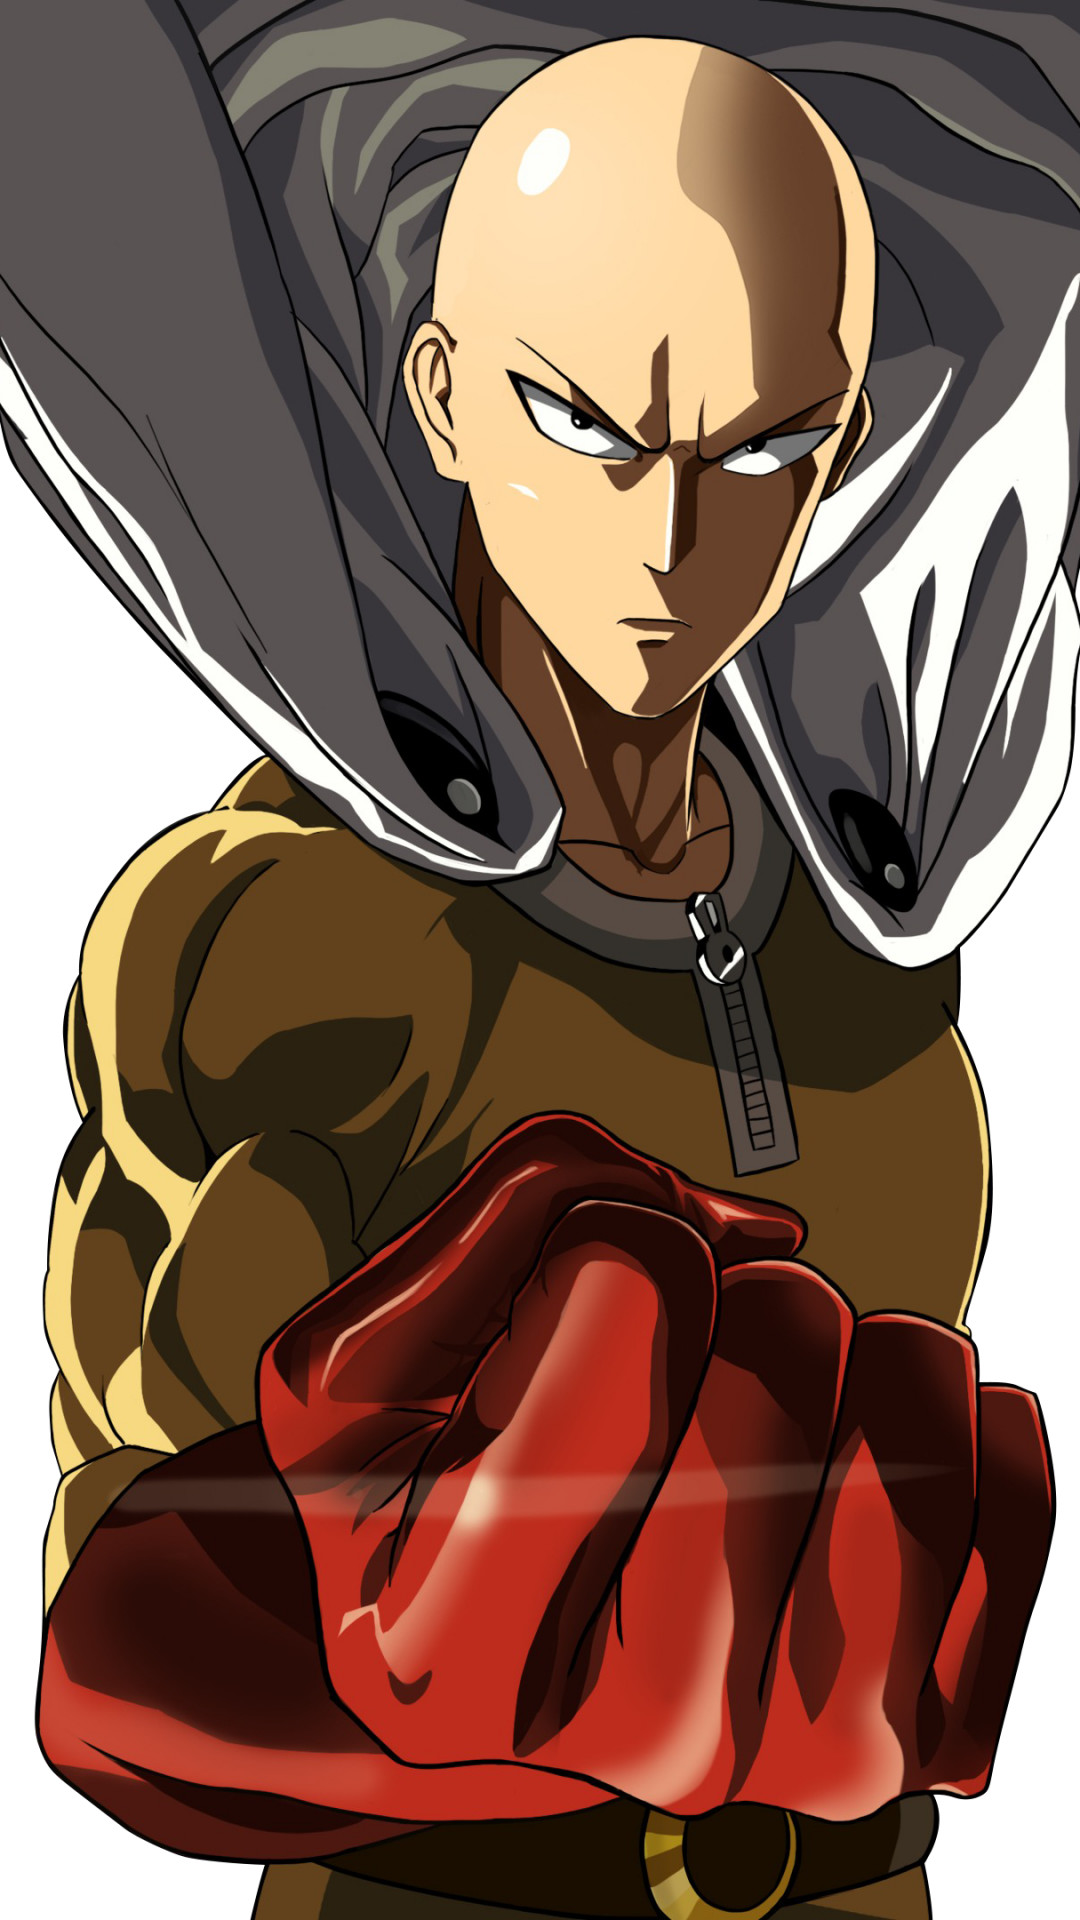 Download One Punch Man Sub Indo Mp4 : download, punch, Wallpaper, Saitama, Serious, Anime, Punch, Doraemon